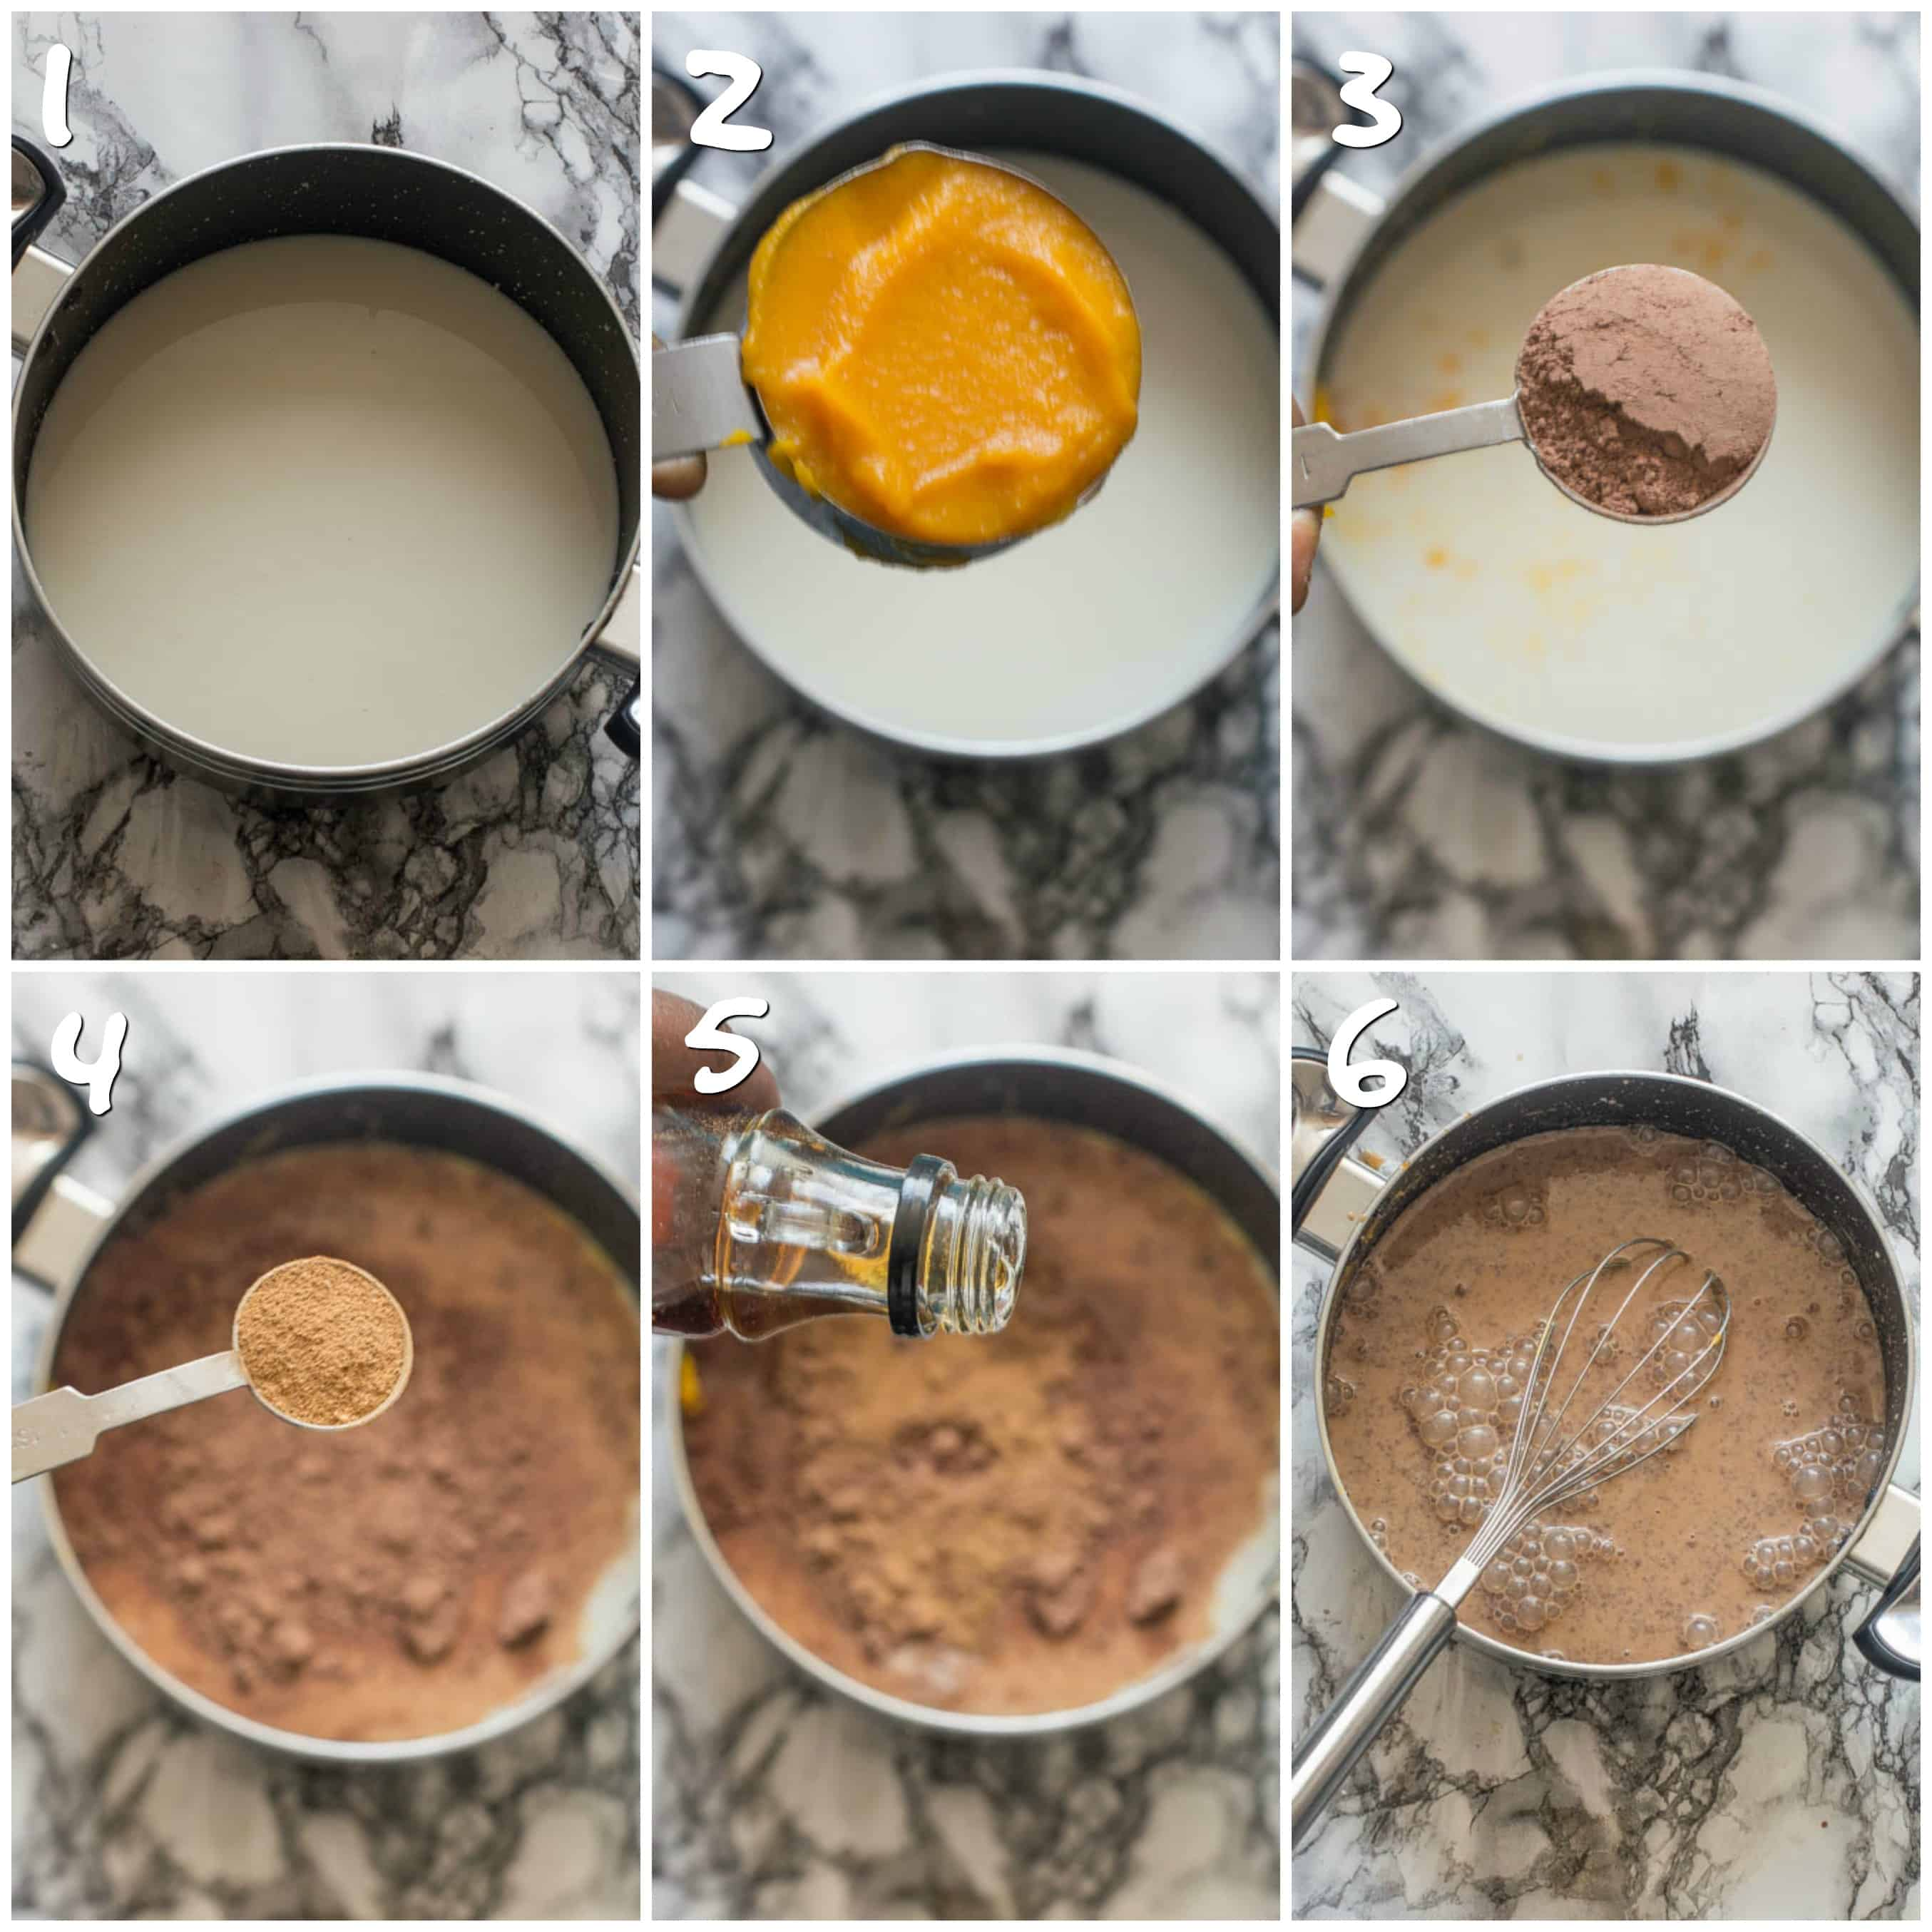 Steps 1-6 whisking milk into chocolate mix